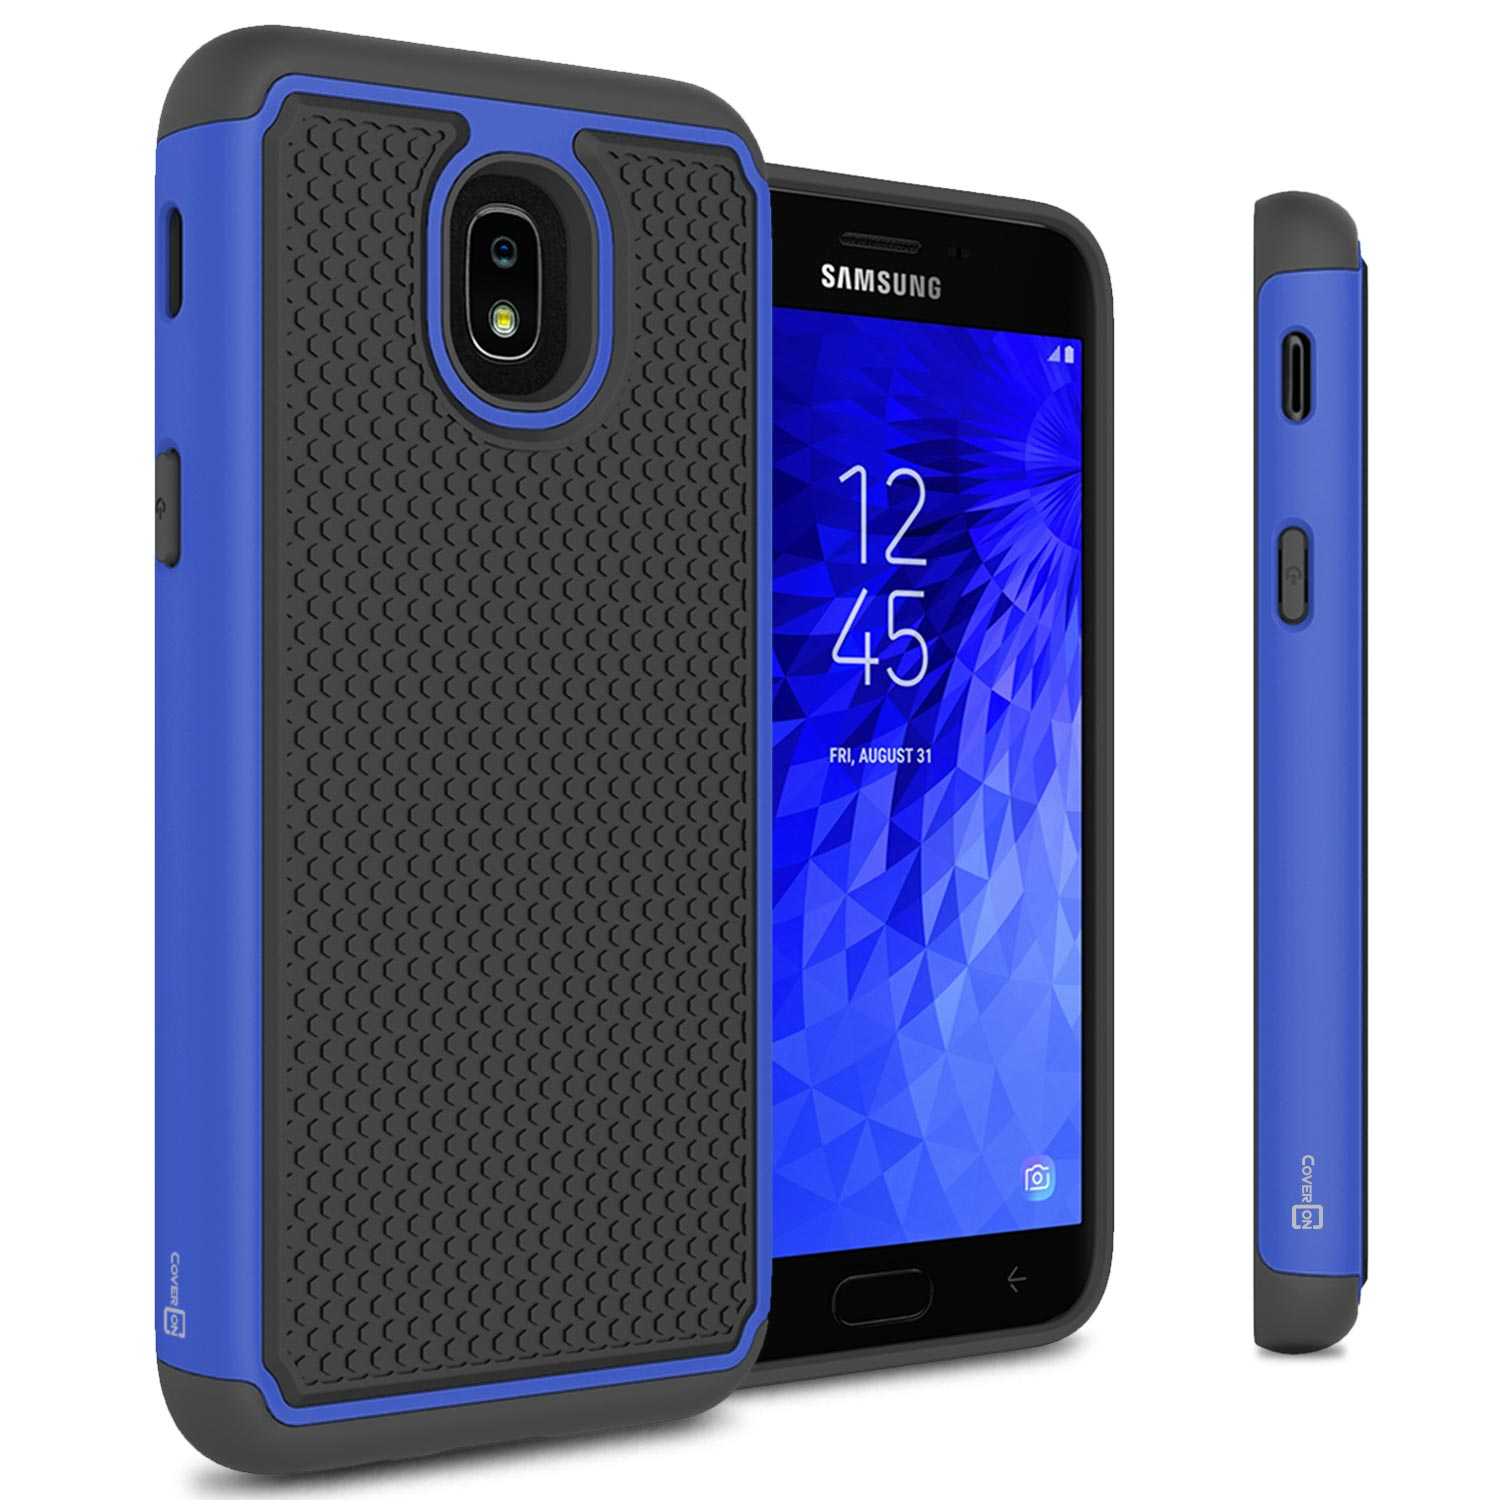 official photos 3e95c b4a62 Details about Blue / Black Case For Samsung Galaxy Amp Prime 3 / Express  Prime 3 Hybrid Cover